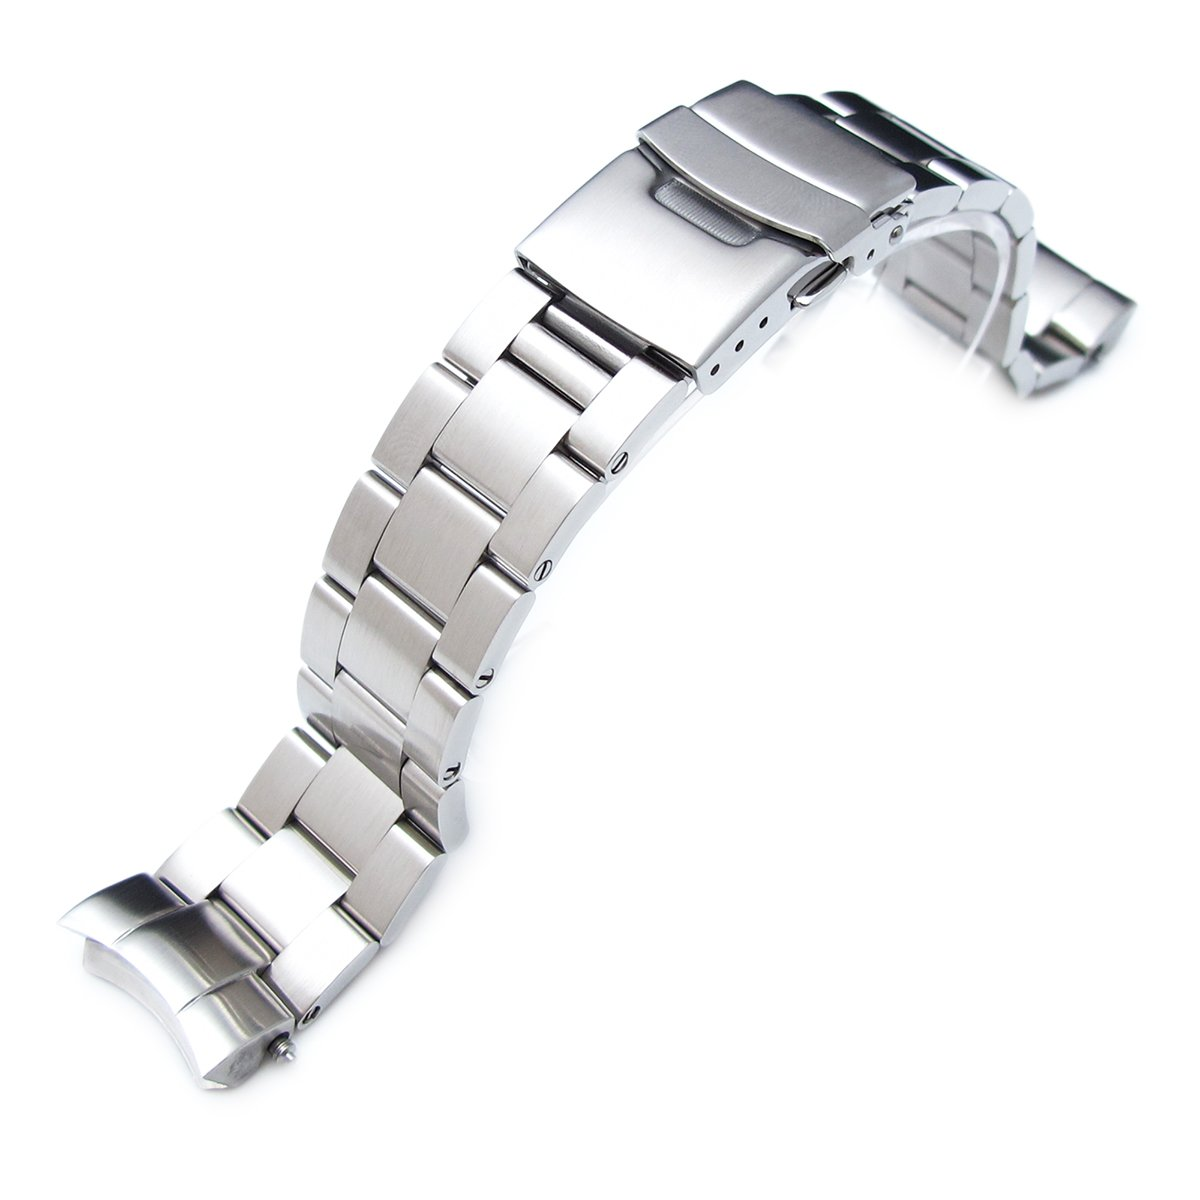 20mm Super Oyster replacement watch band for SEIKO Sumo SBDC001 SBDC003 SBDC031 SBDC033